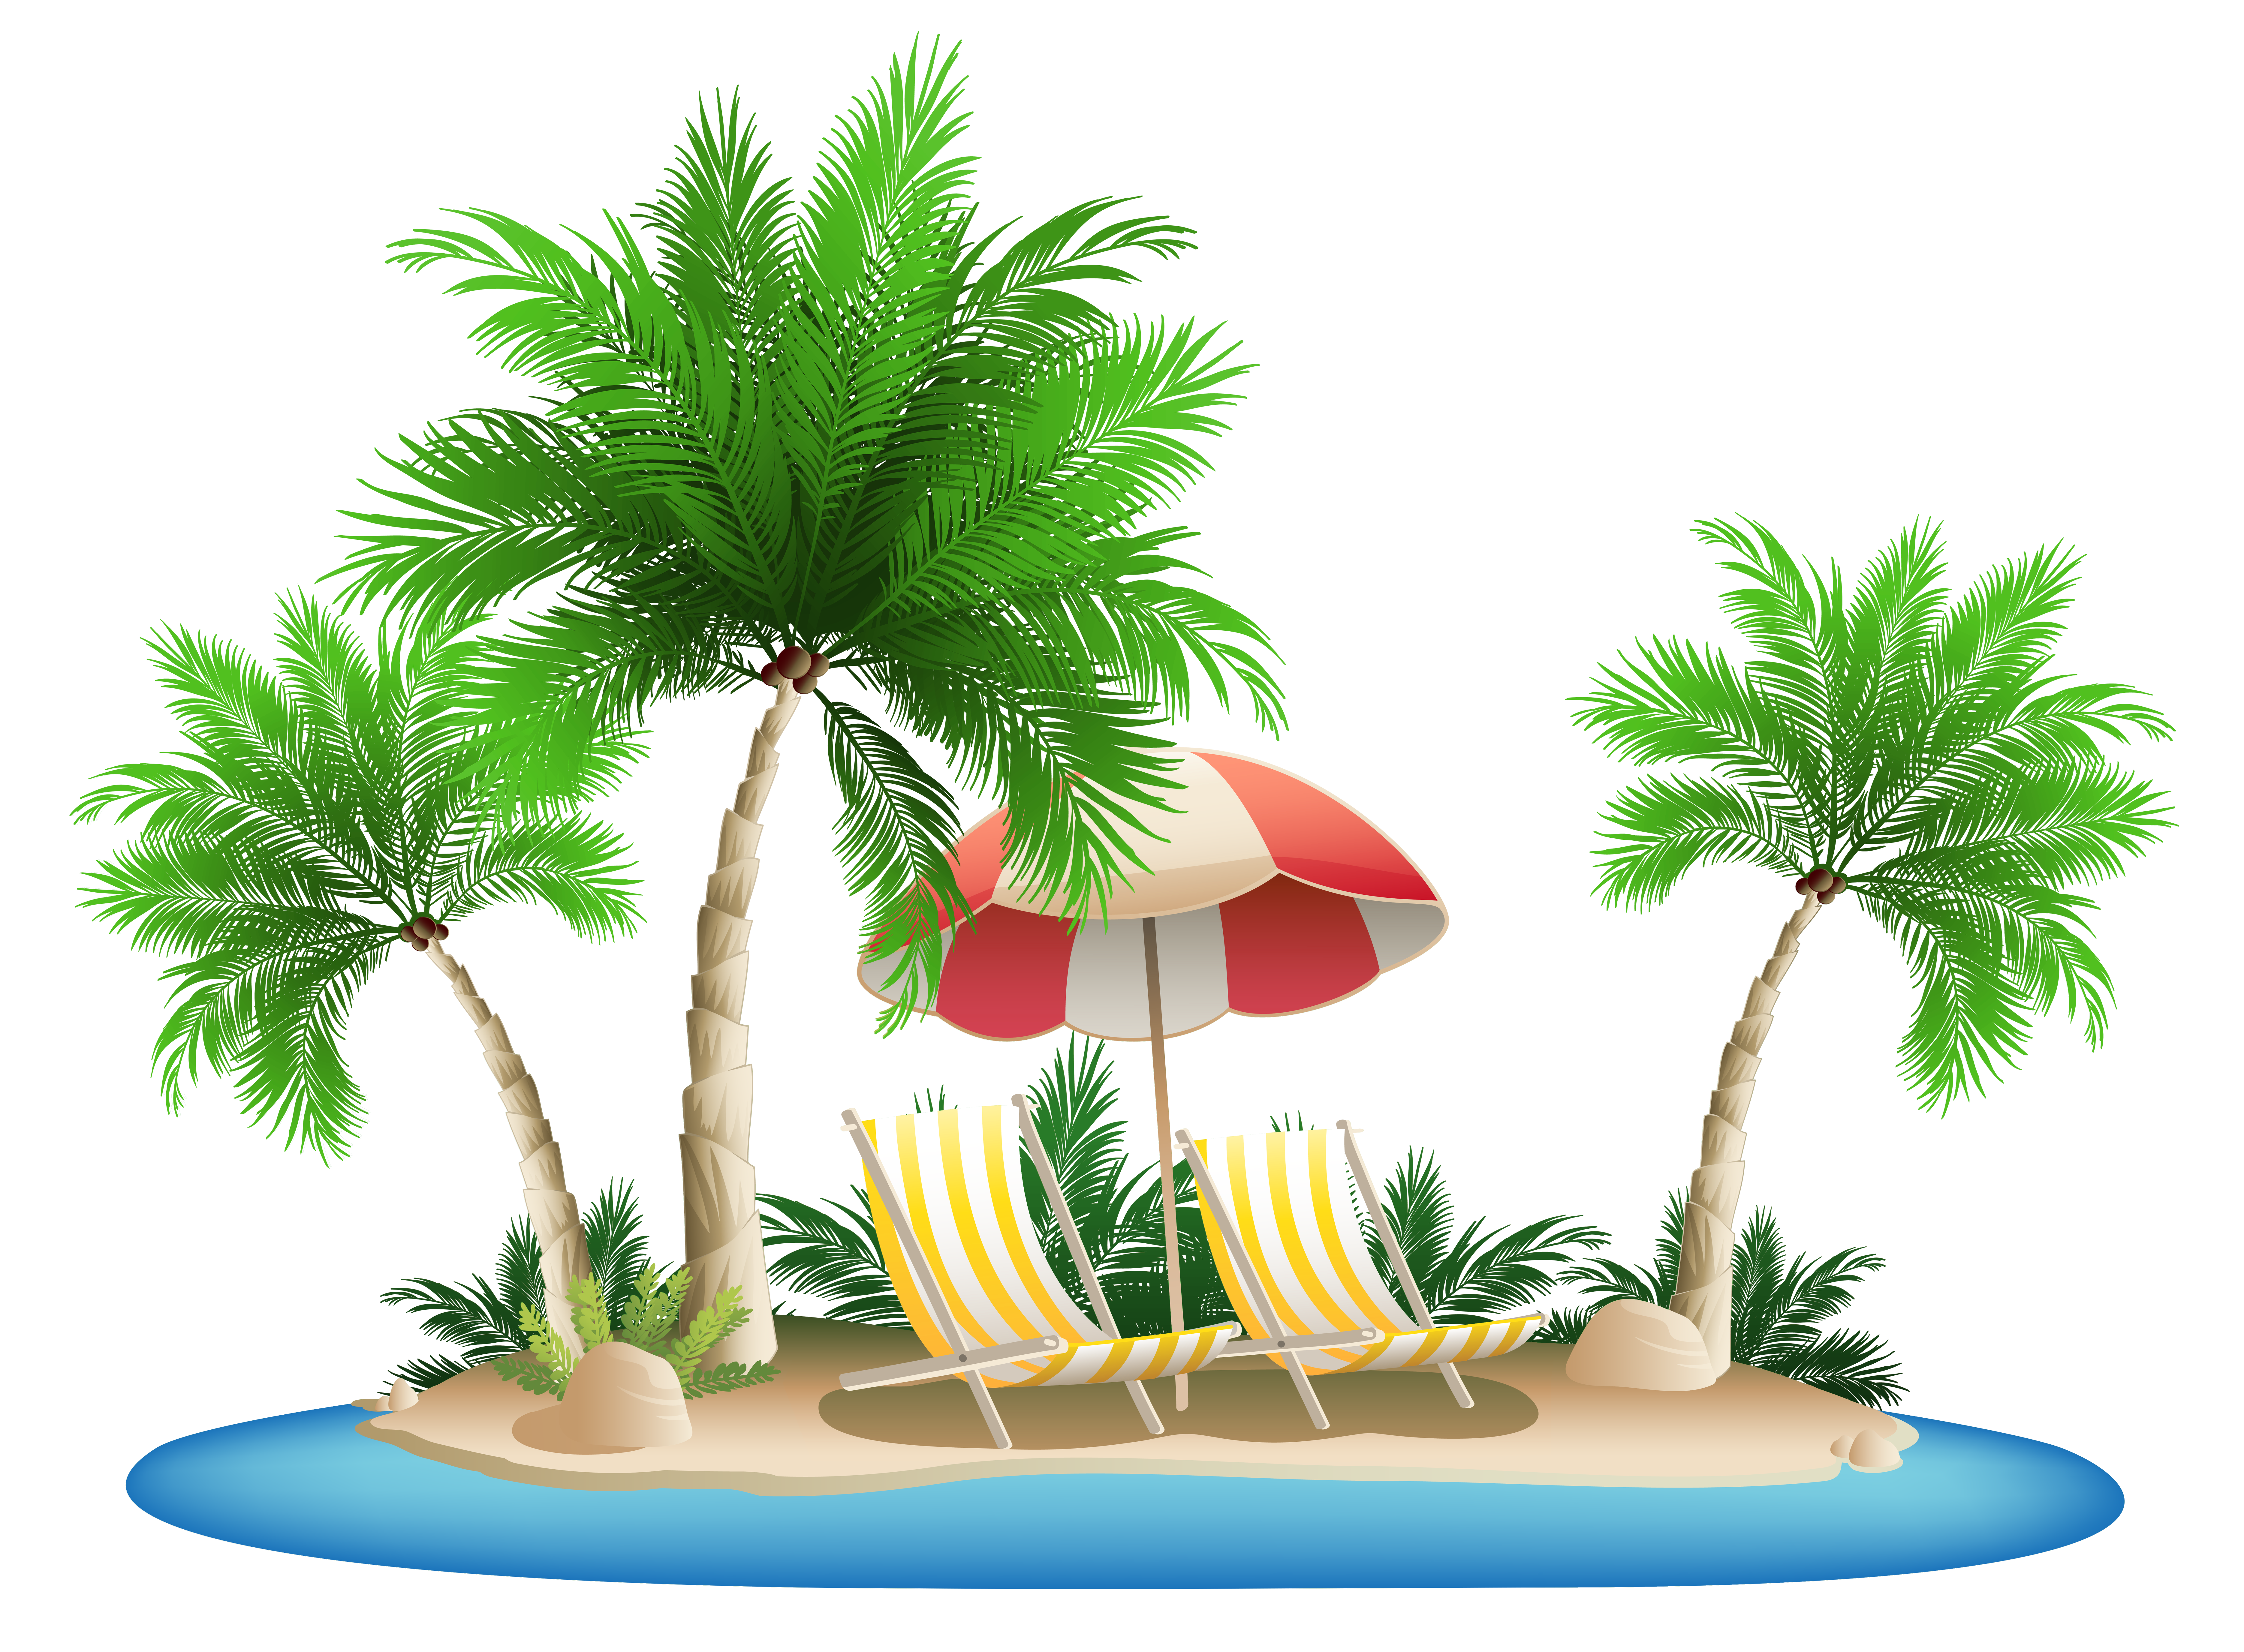 Beach christmas clipart banner freeuse library Beach Umbrella with Chairs and Palm Island PNG Clipart | Gallery ... banner freeuse library